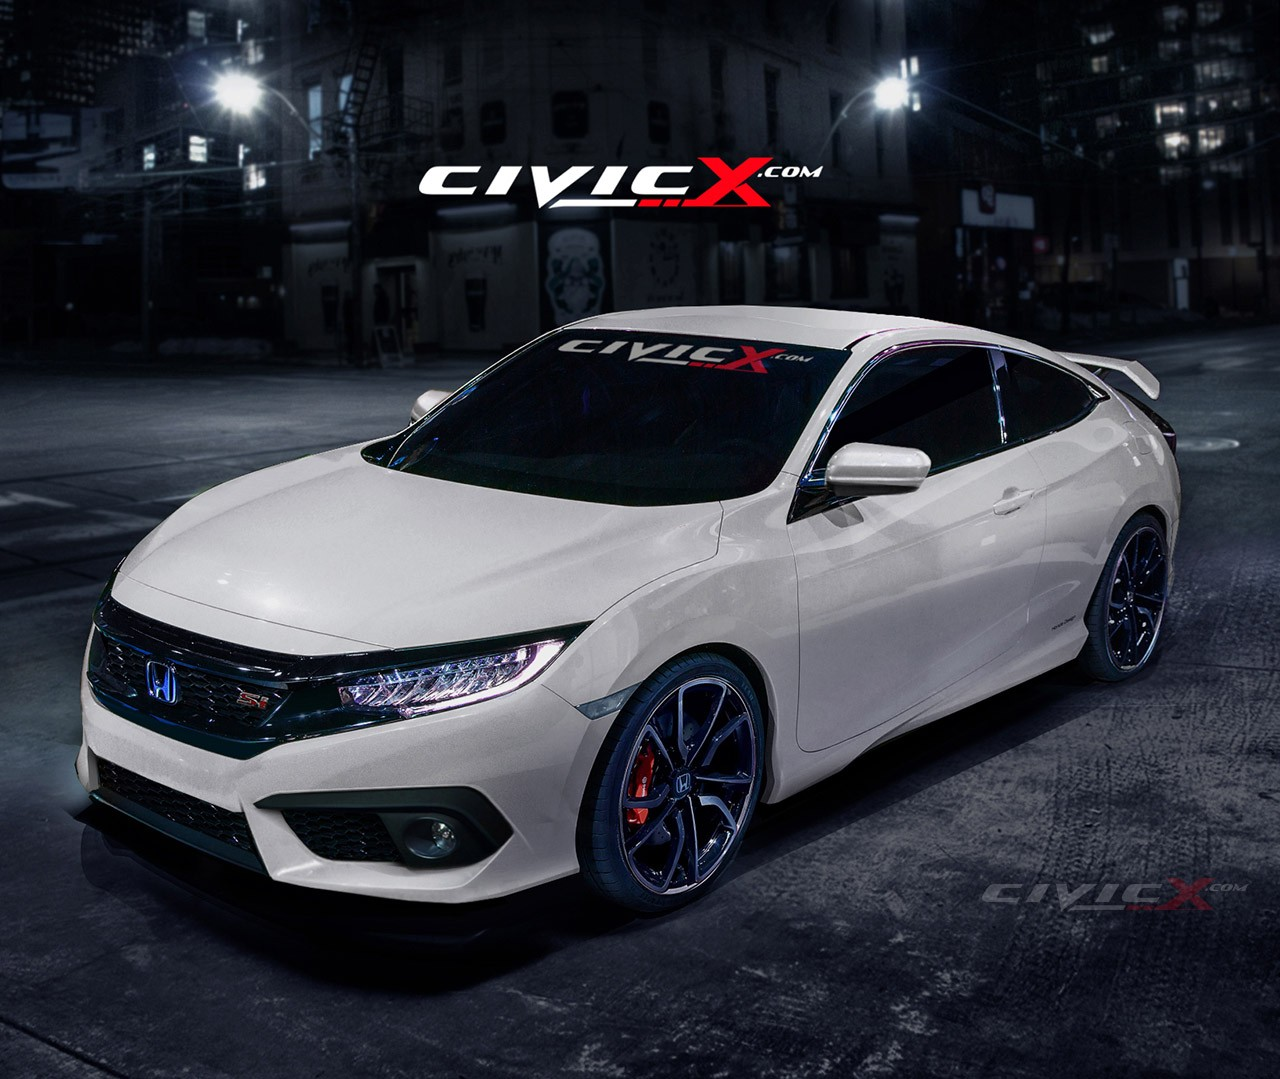 2016 Civic Si Coupe Accurately Rendered. But Is There a Turbo Under